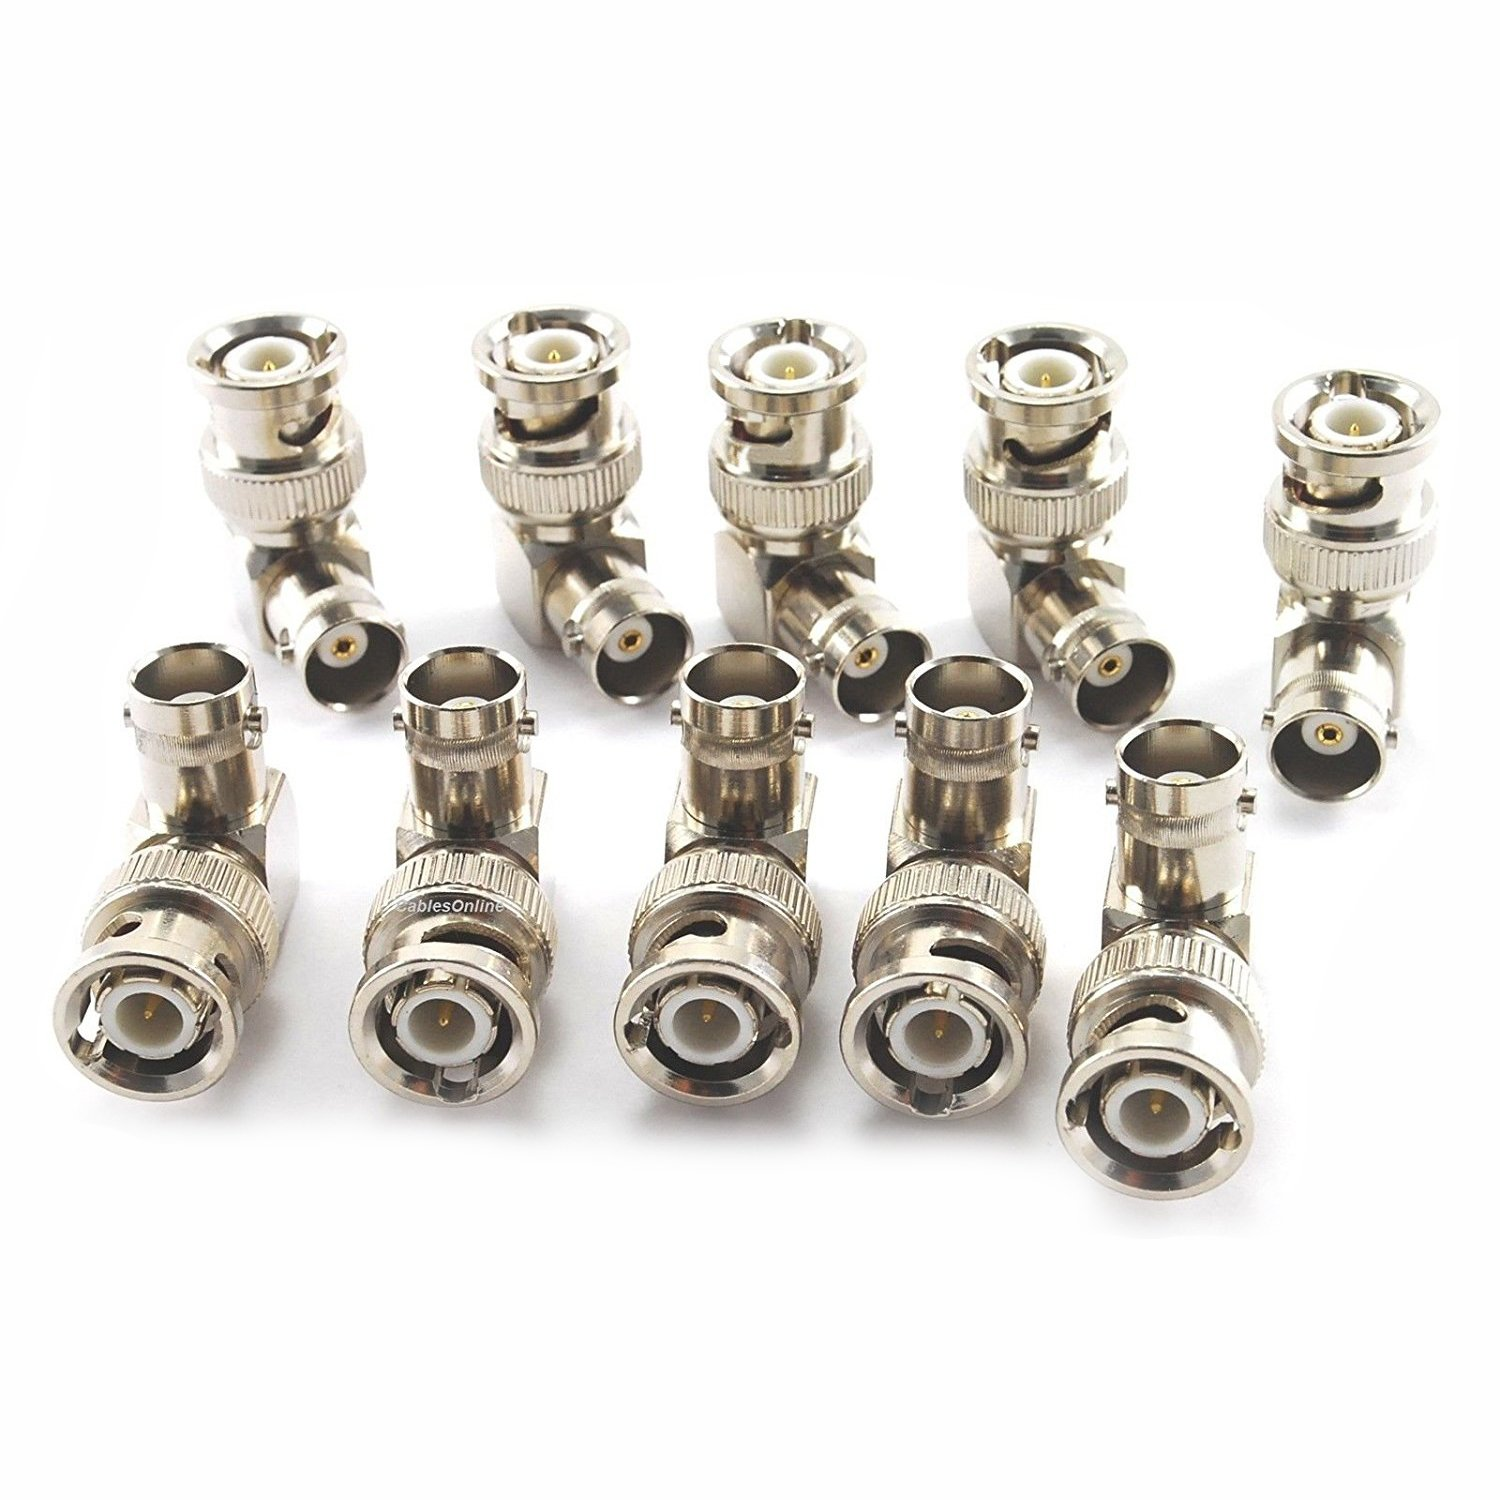 SODIAL 10-Pack 90-Degree BNC Right-Angle Male to BNC Female Video Adapter AV-A55-10